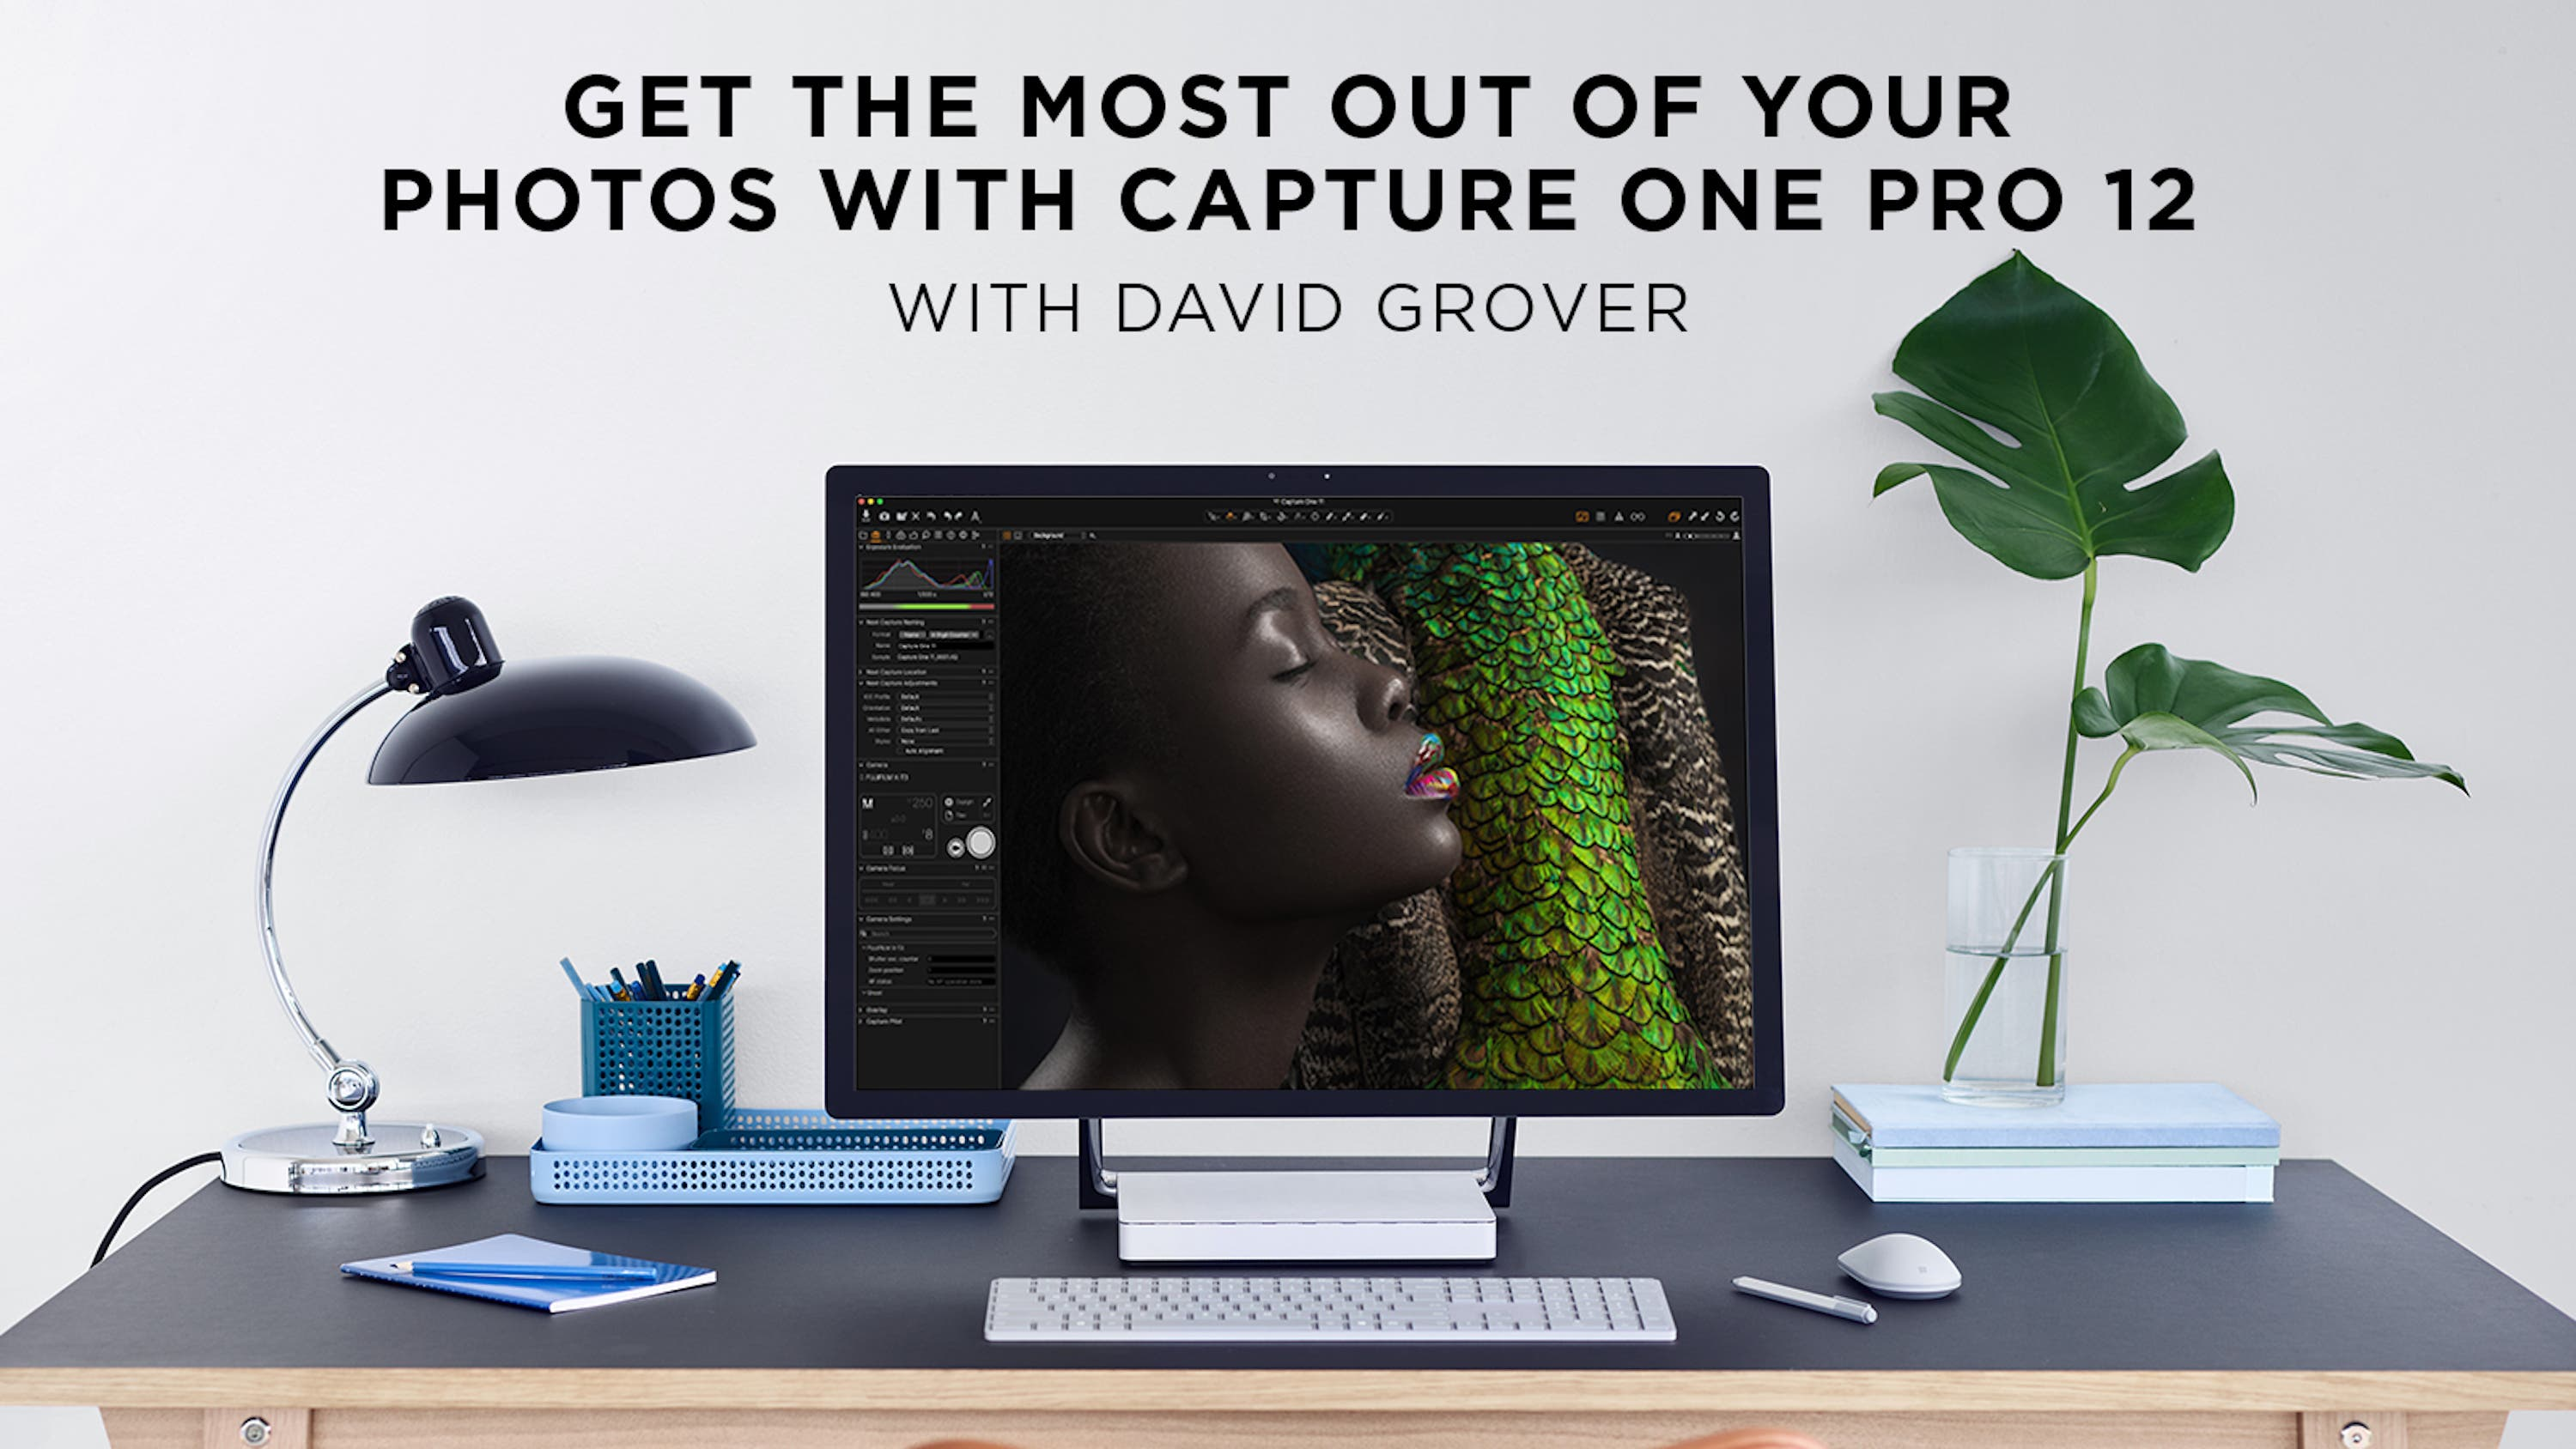 Cheap Photo: Take 50% Off of All Creative Live Classes! (Ends Today)